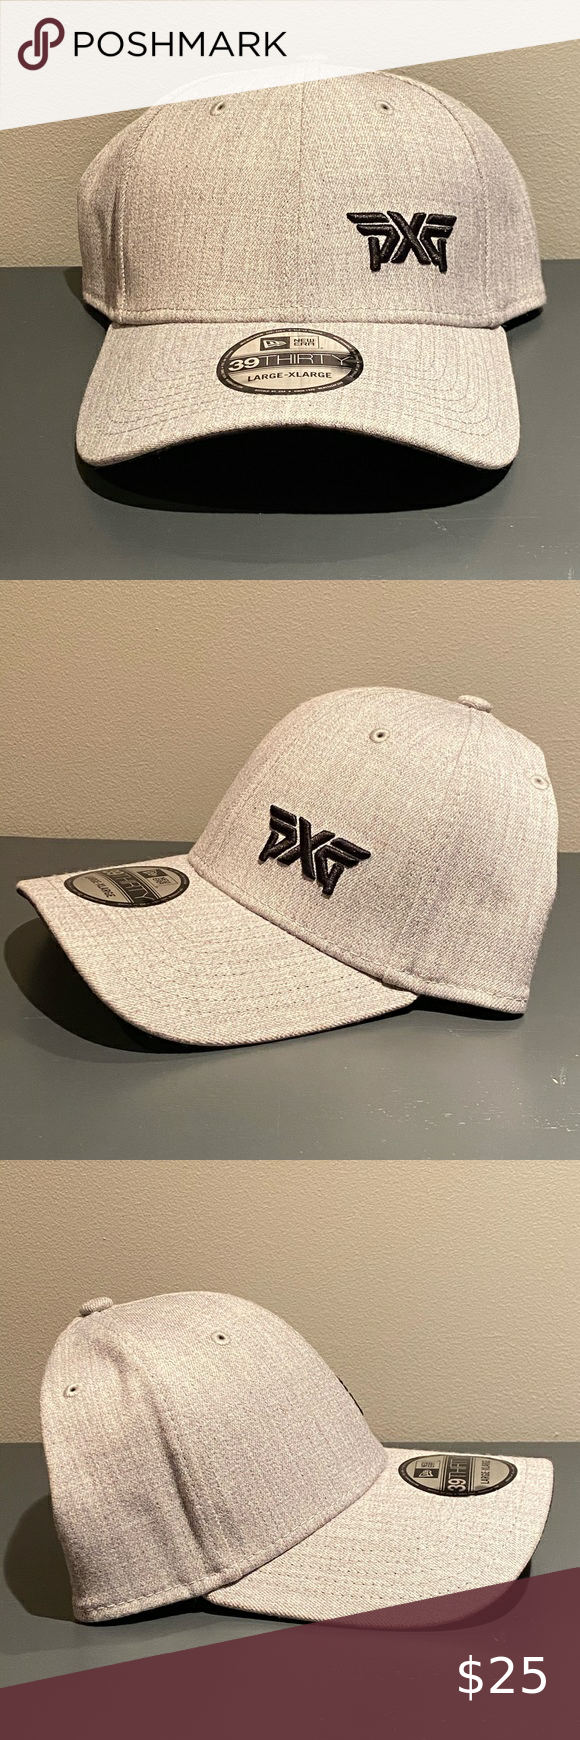 New With Tags Pxg Golf Hat Golf Hats New With Tags Hats